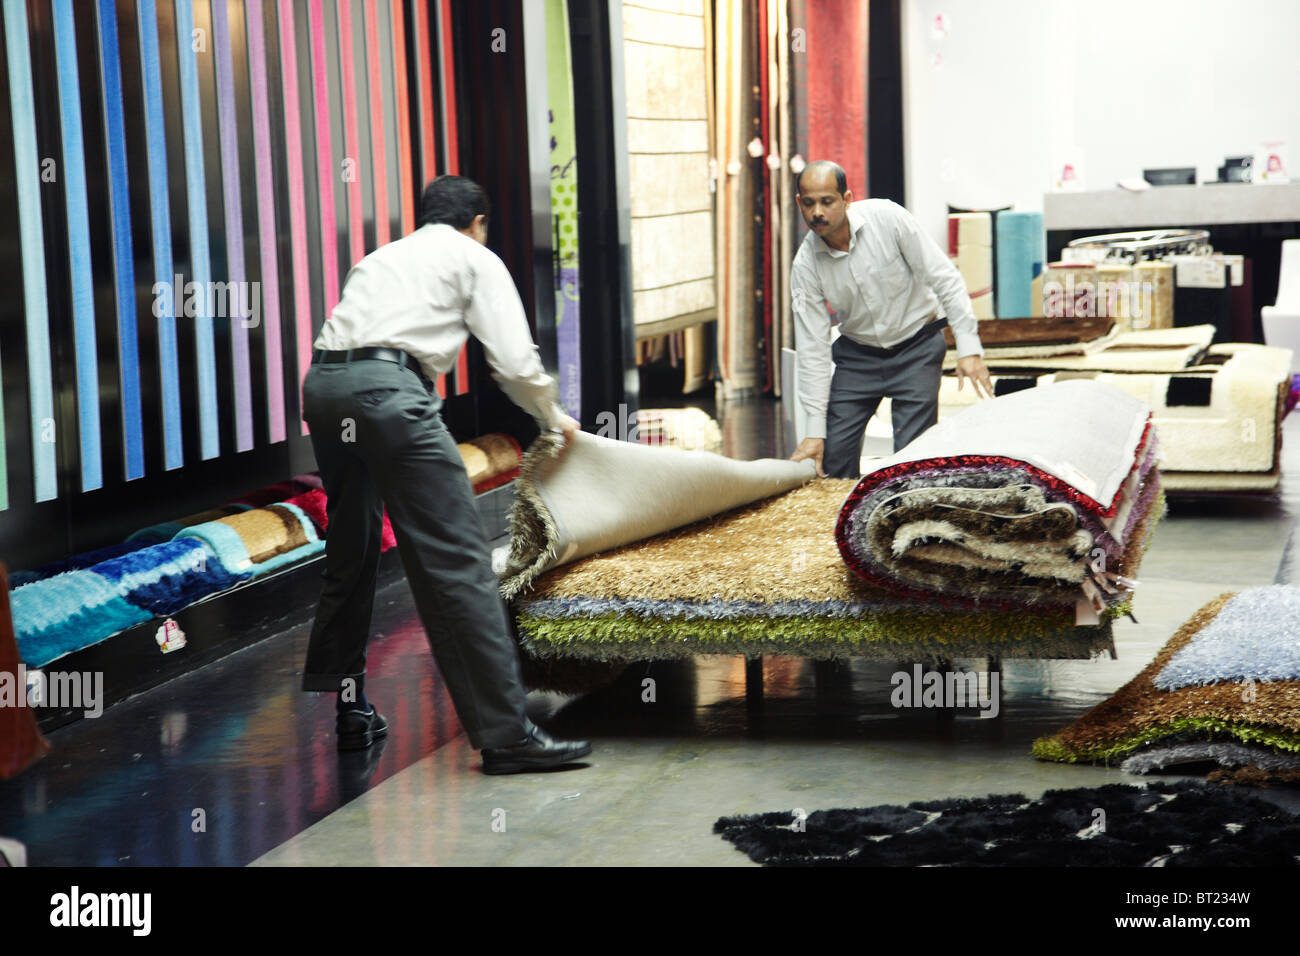 Editorial photo of two men working with carpet in shop - Stock Image